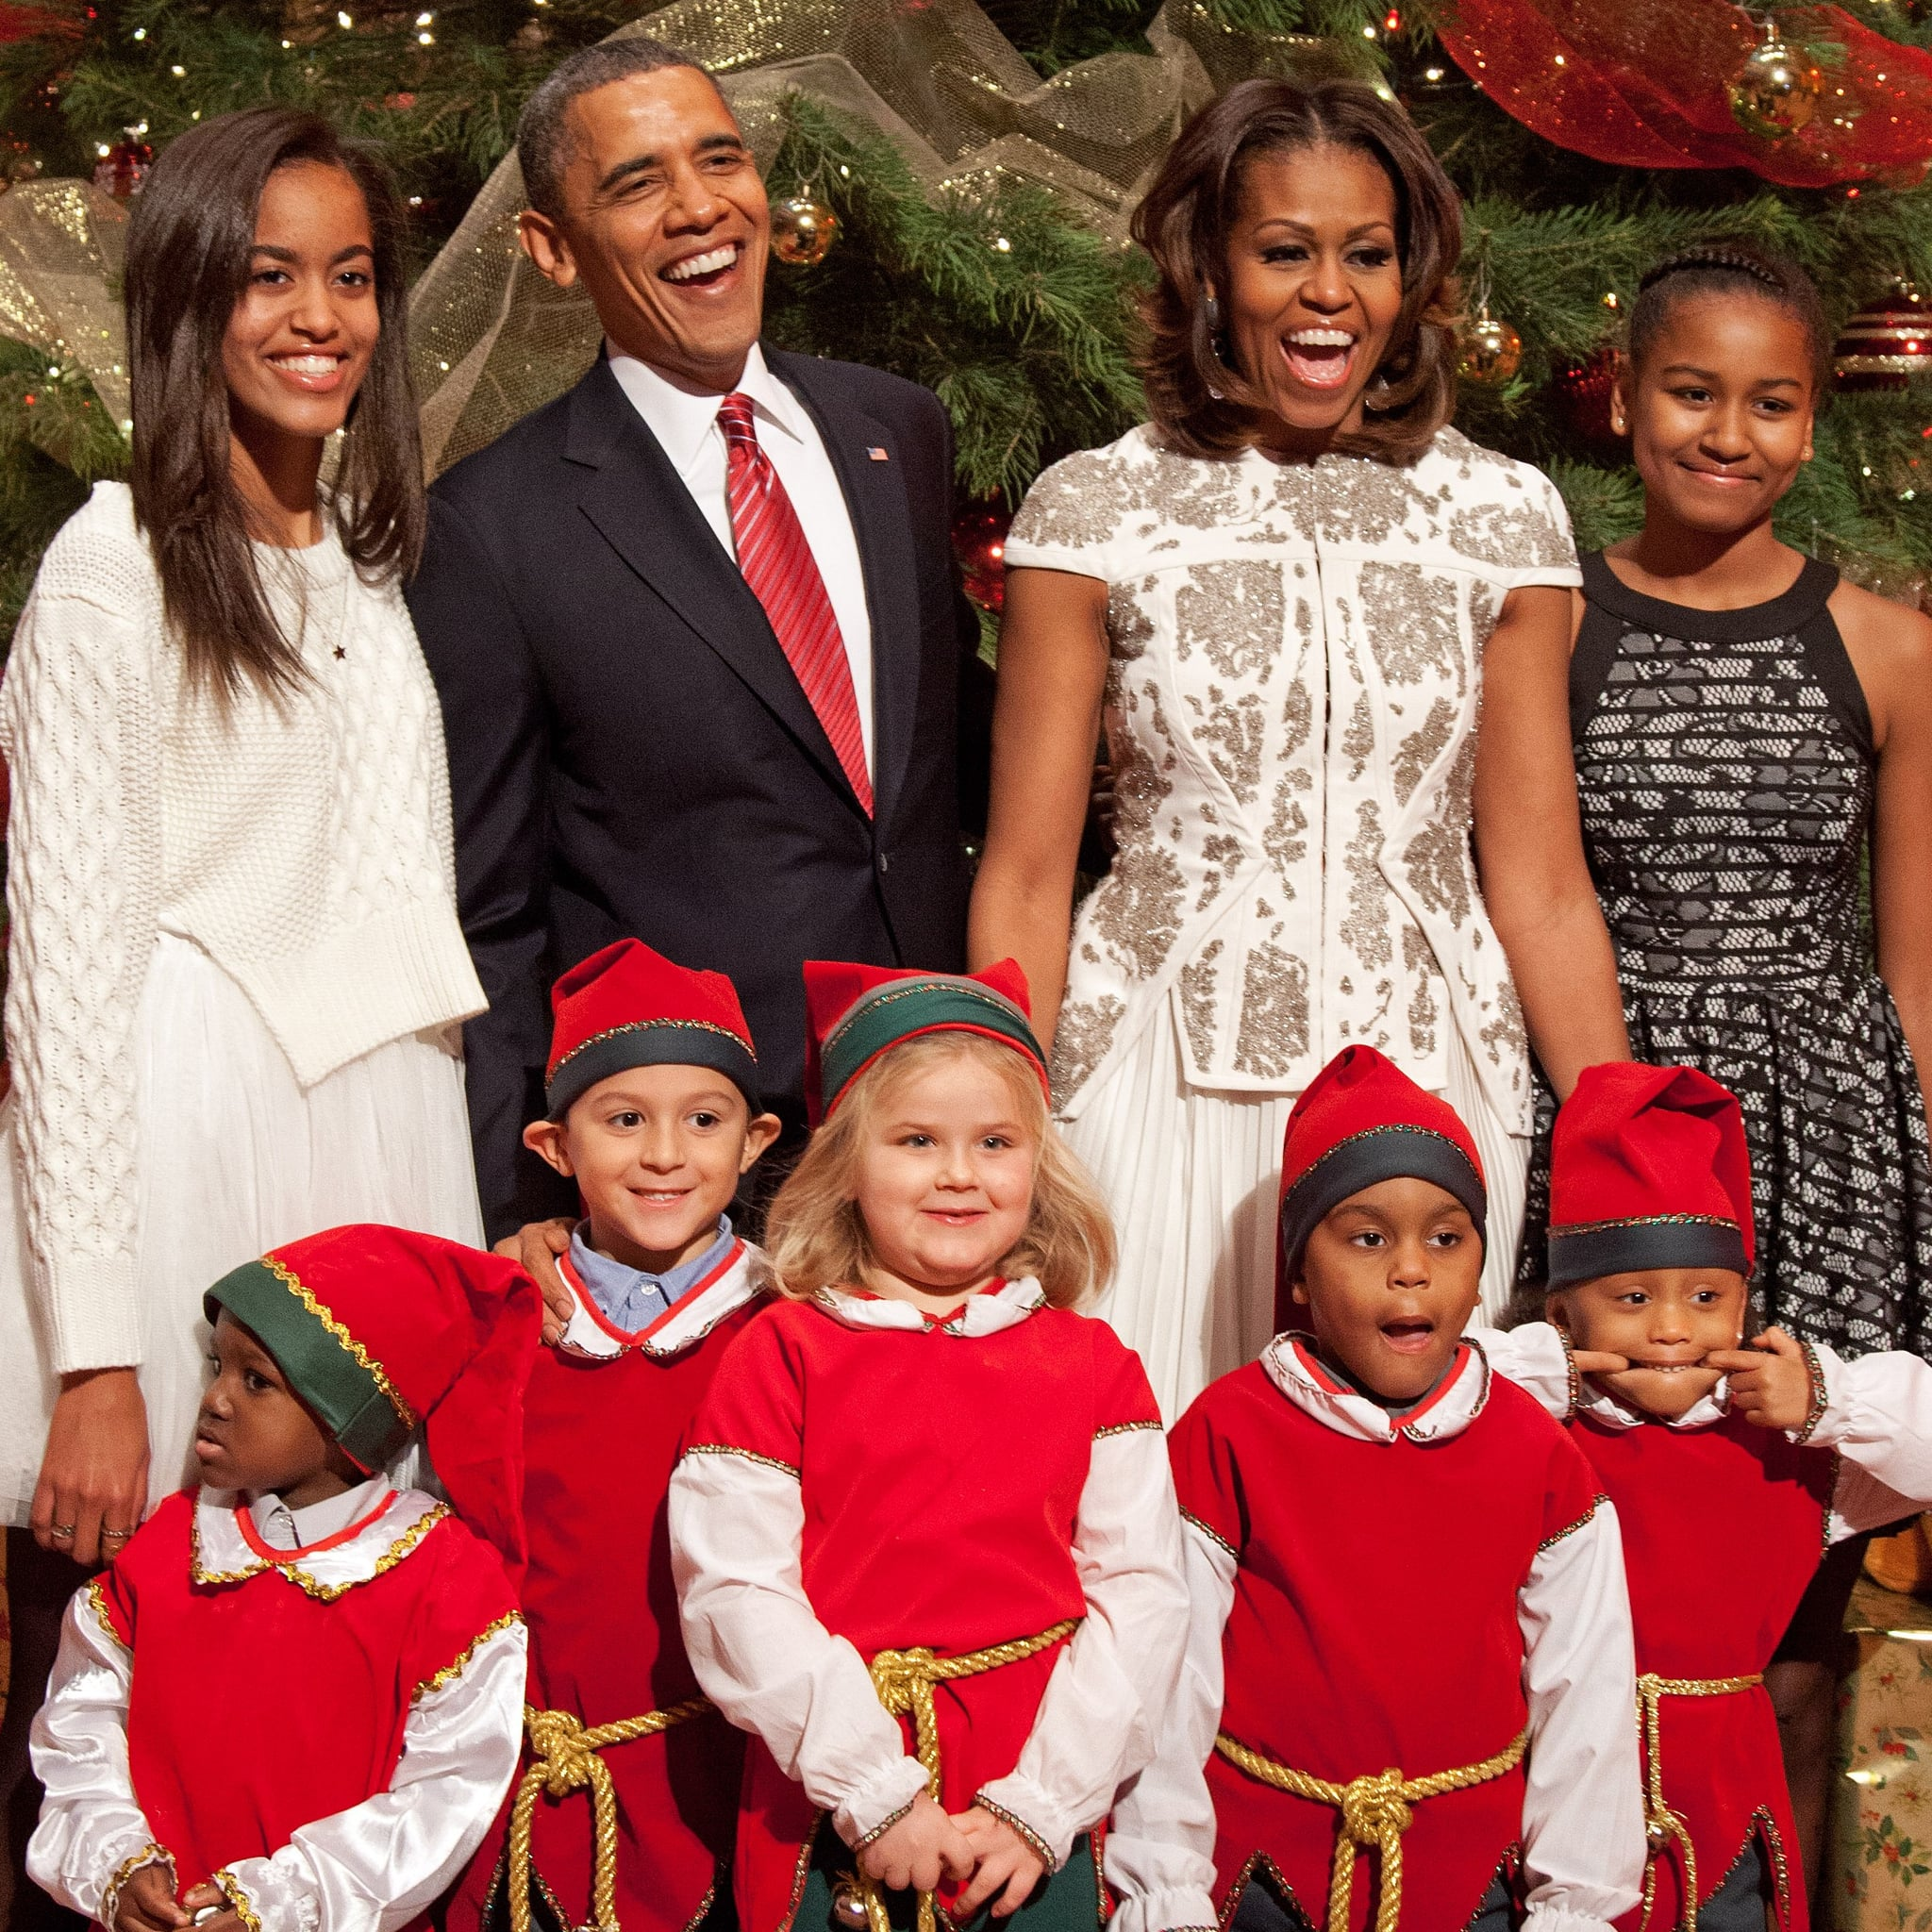 obama family christmas card december 2016 - Family Photo Christmas Cards